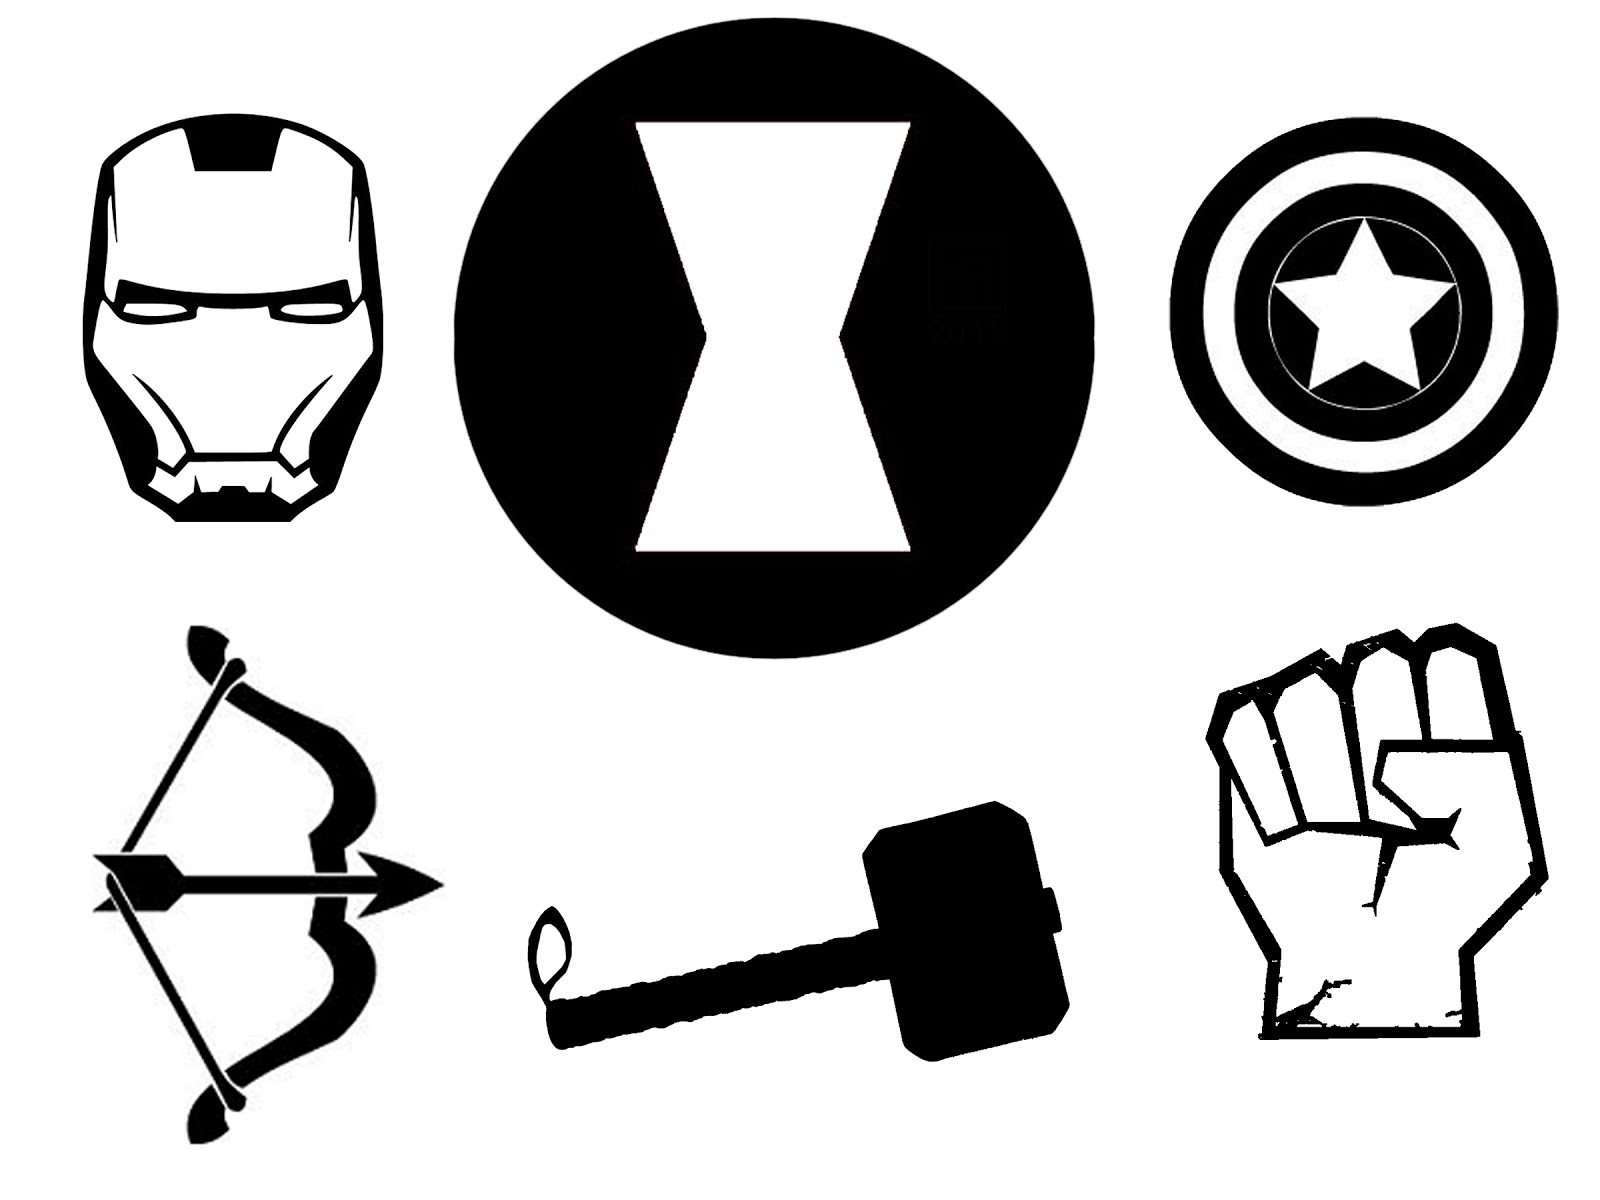 Spiderman Clipart Black And White | Free download best Spiderman ...